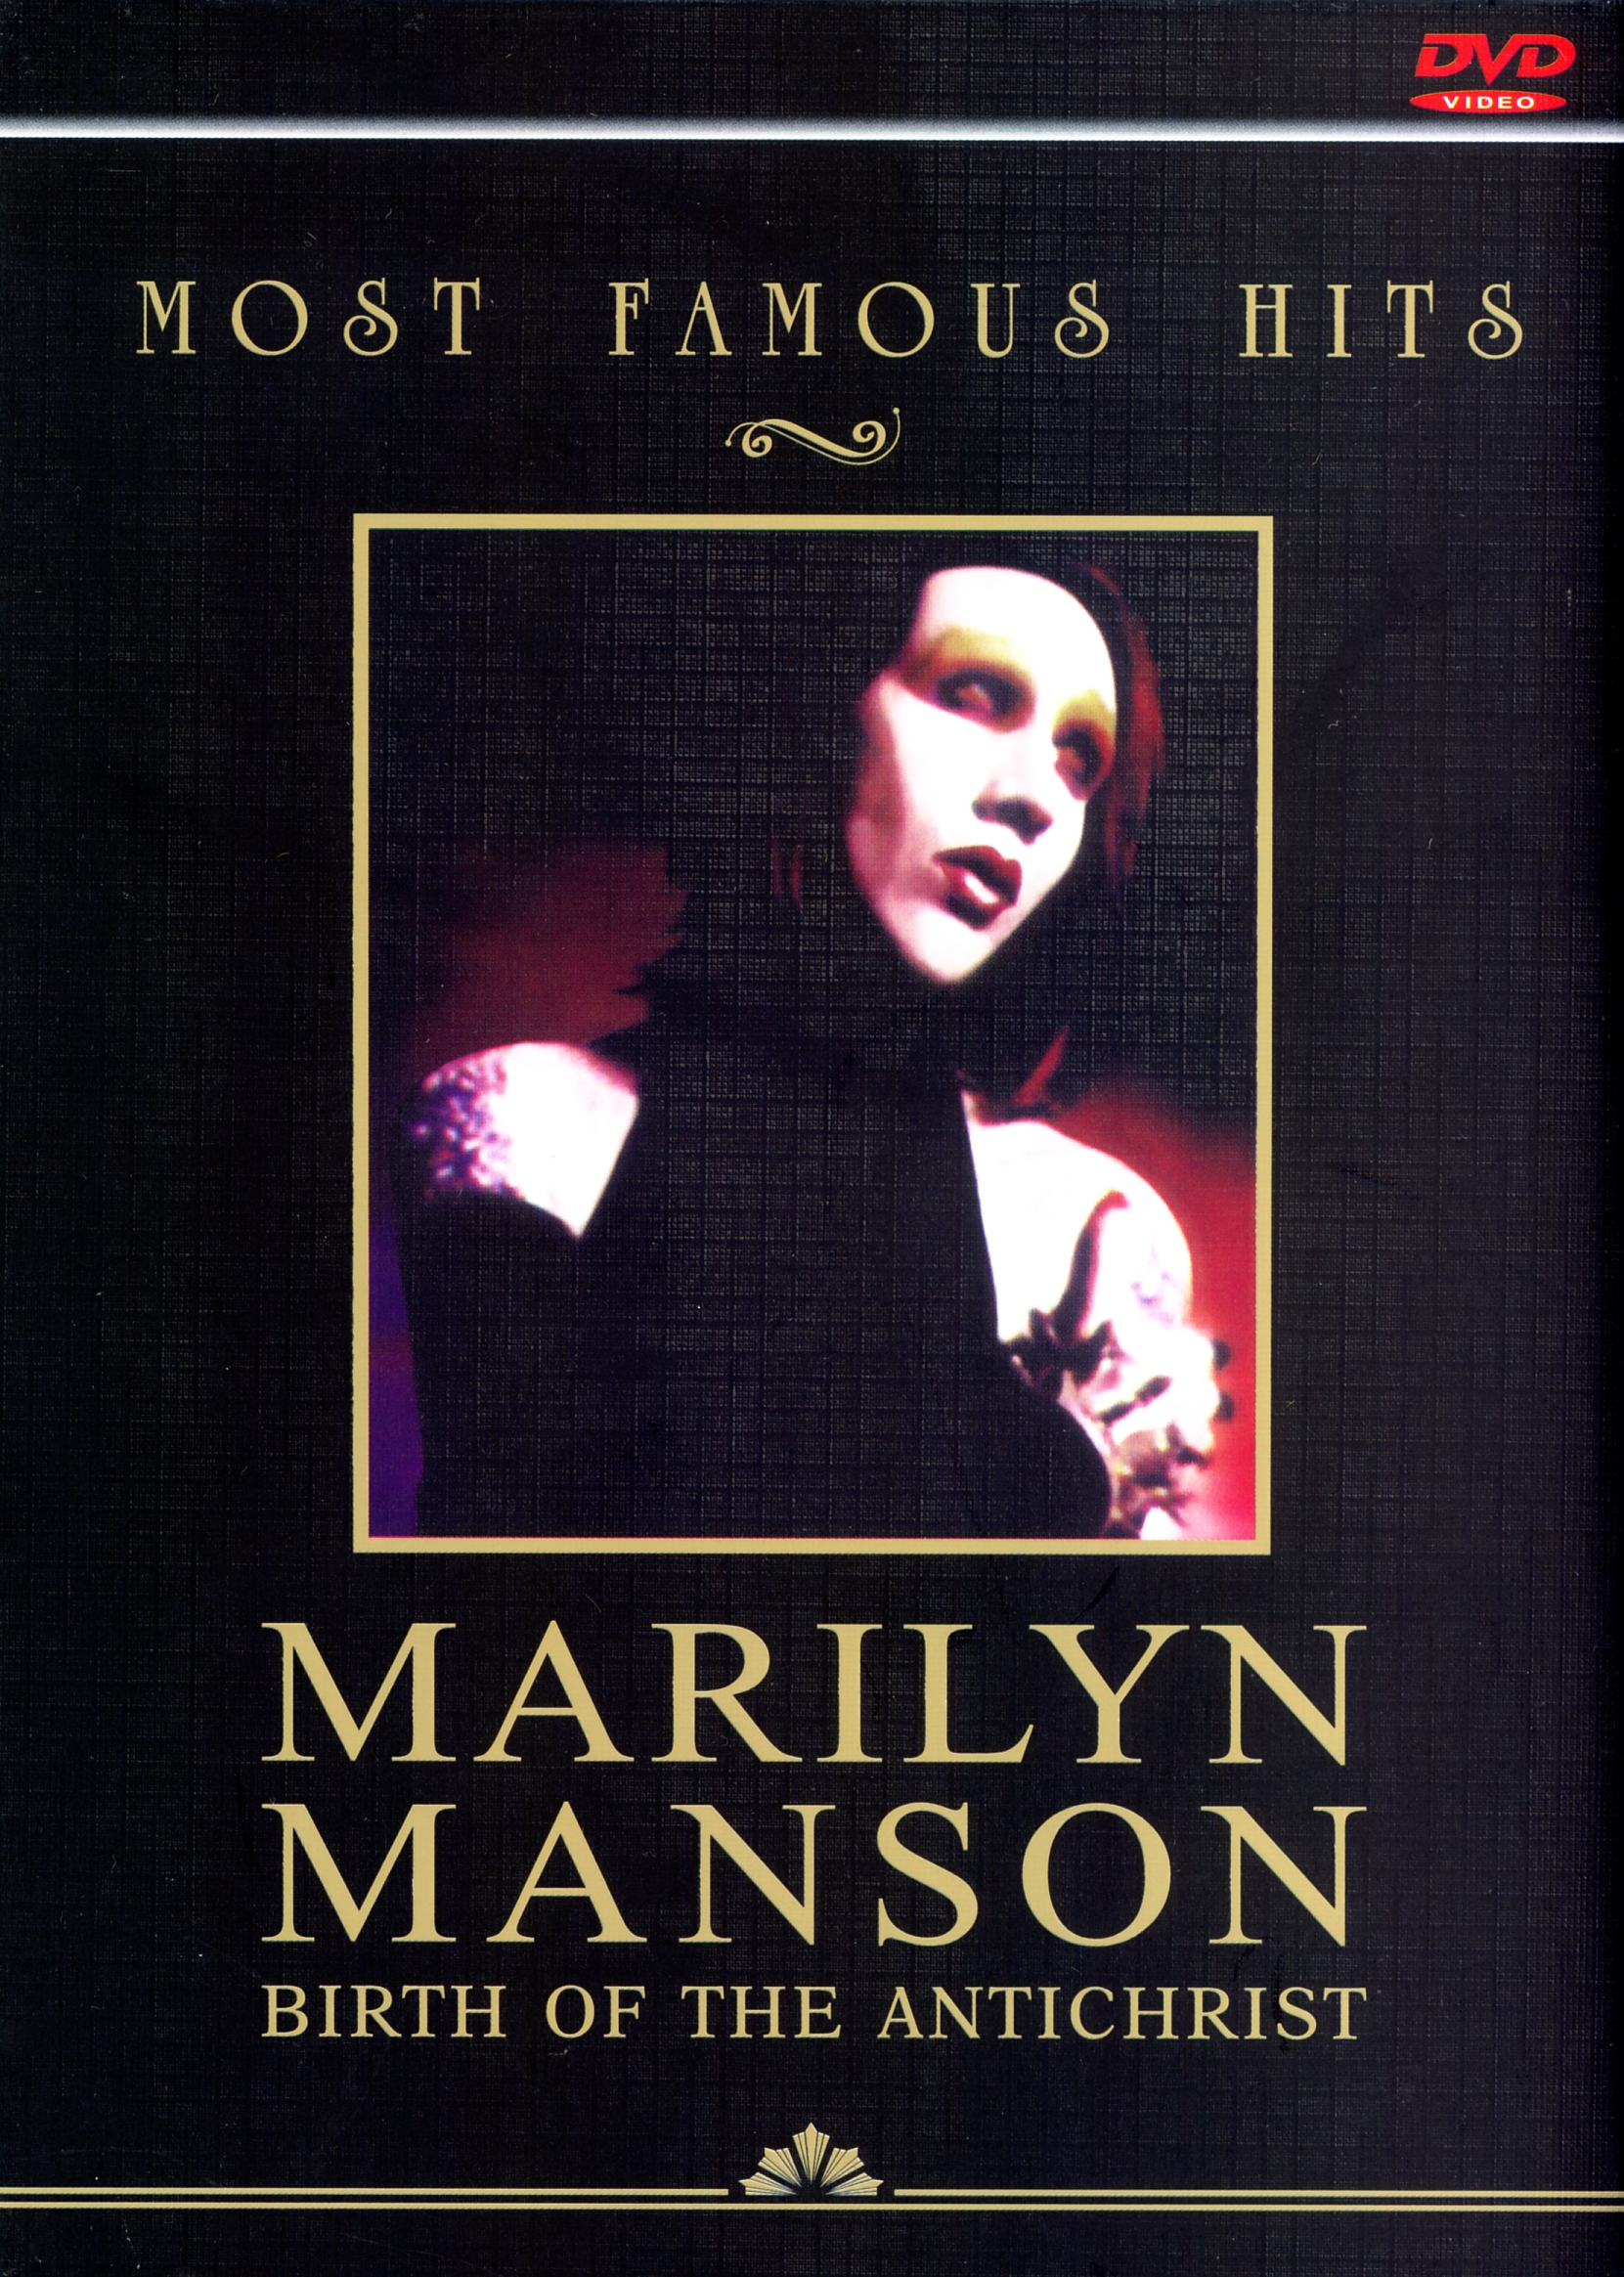 Most Famous Hits: Marilyn Manson